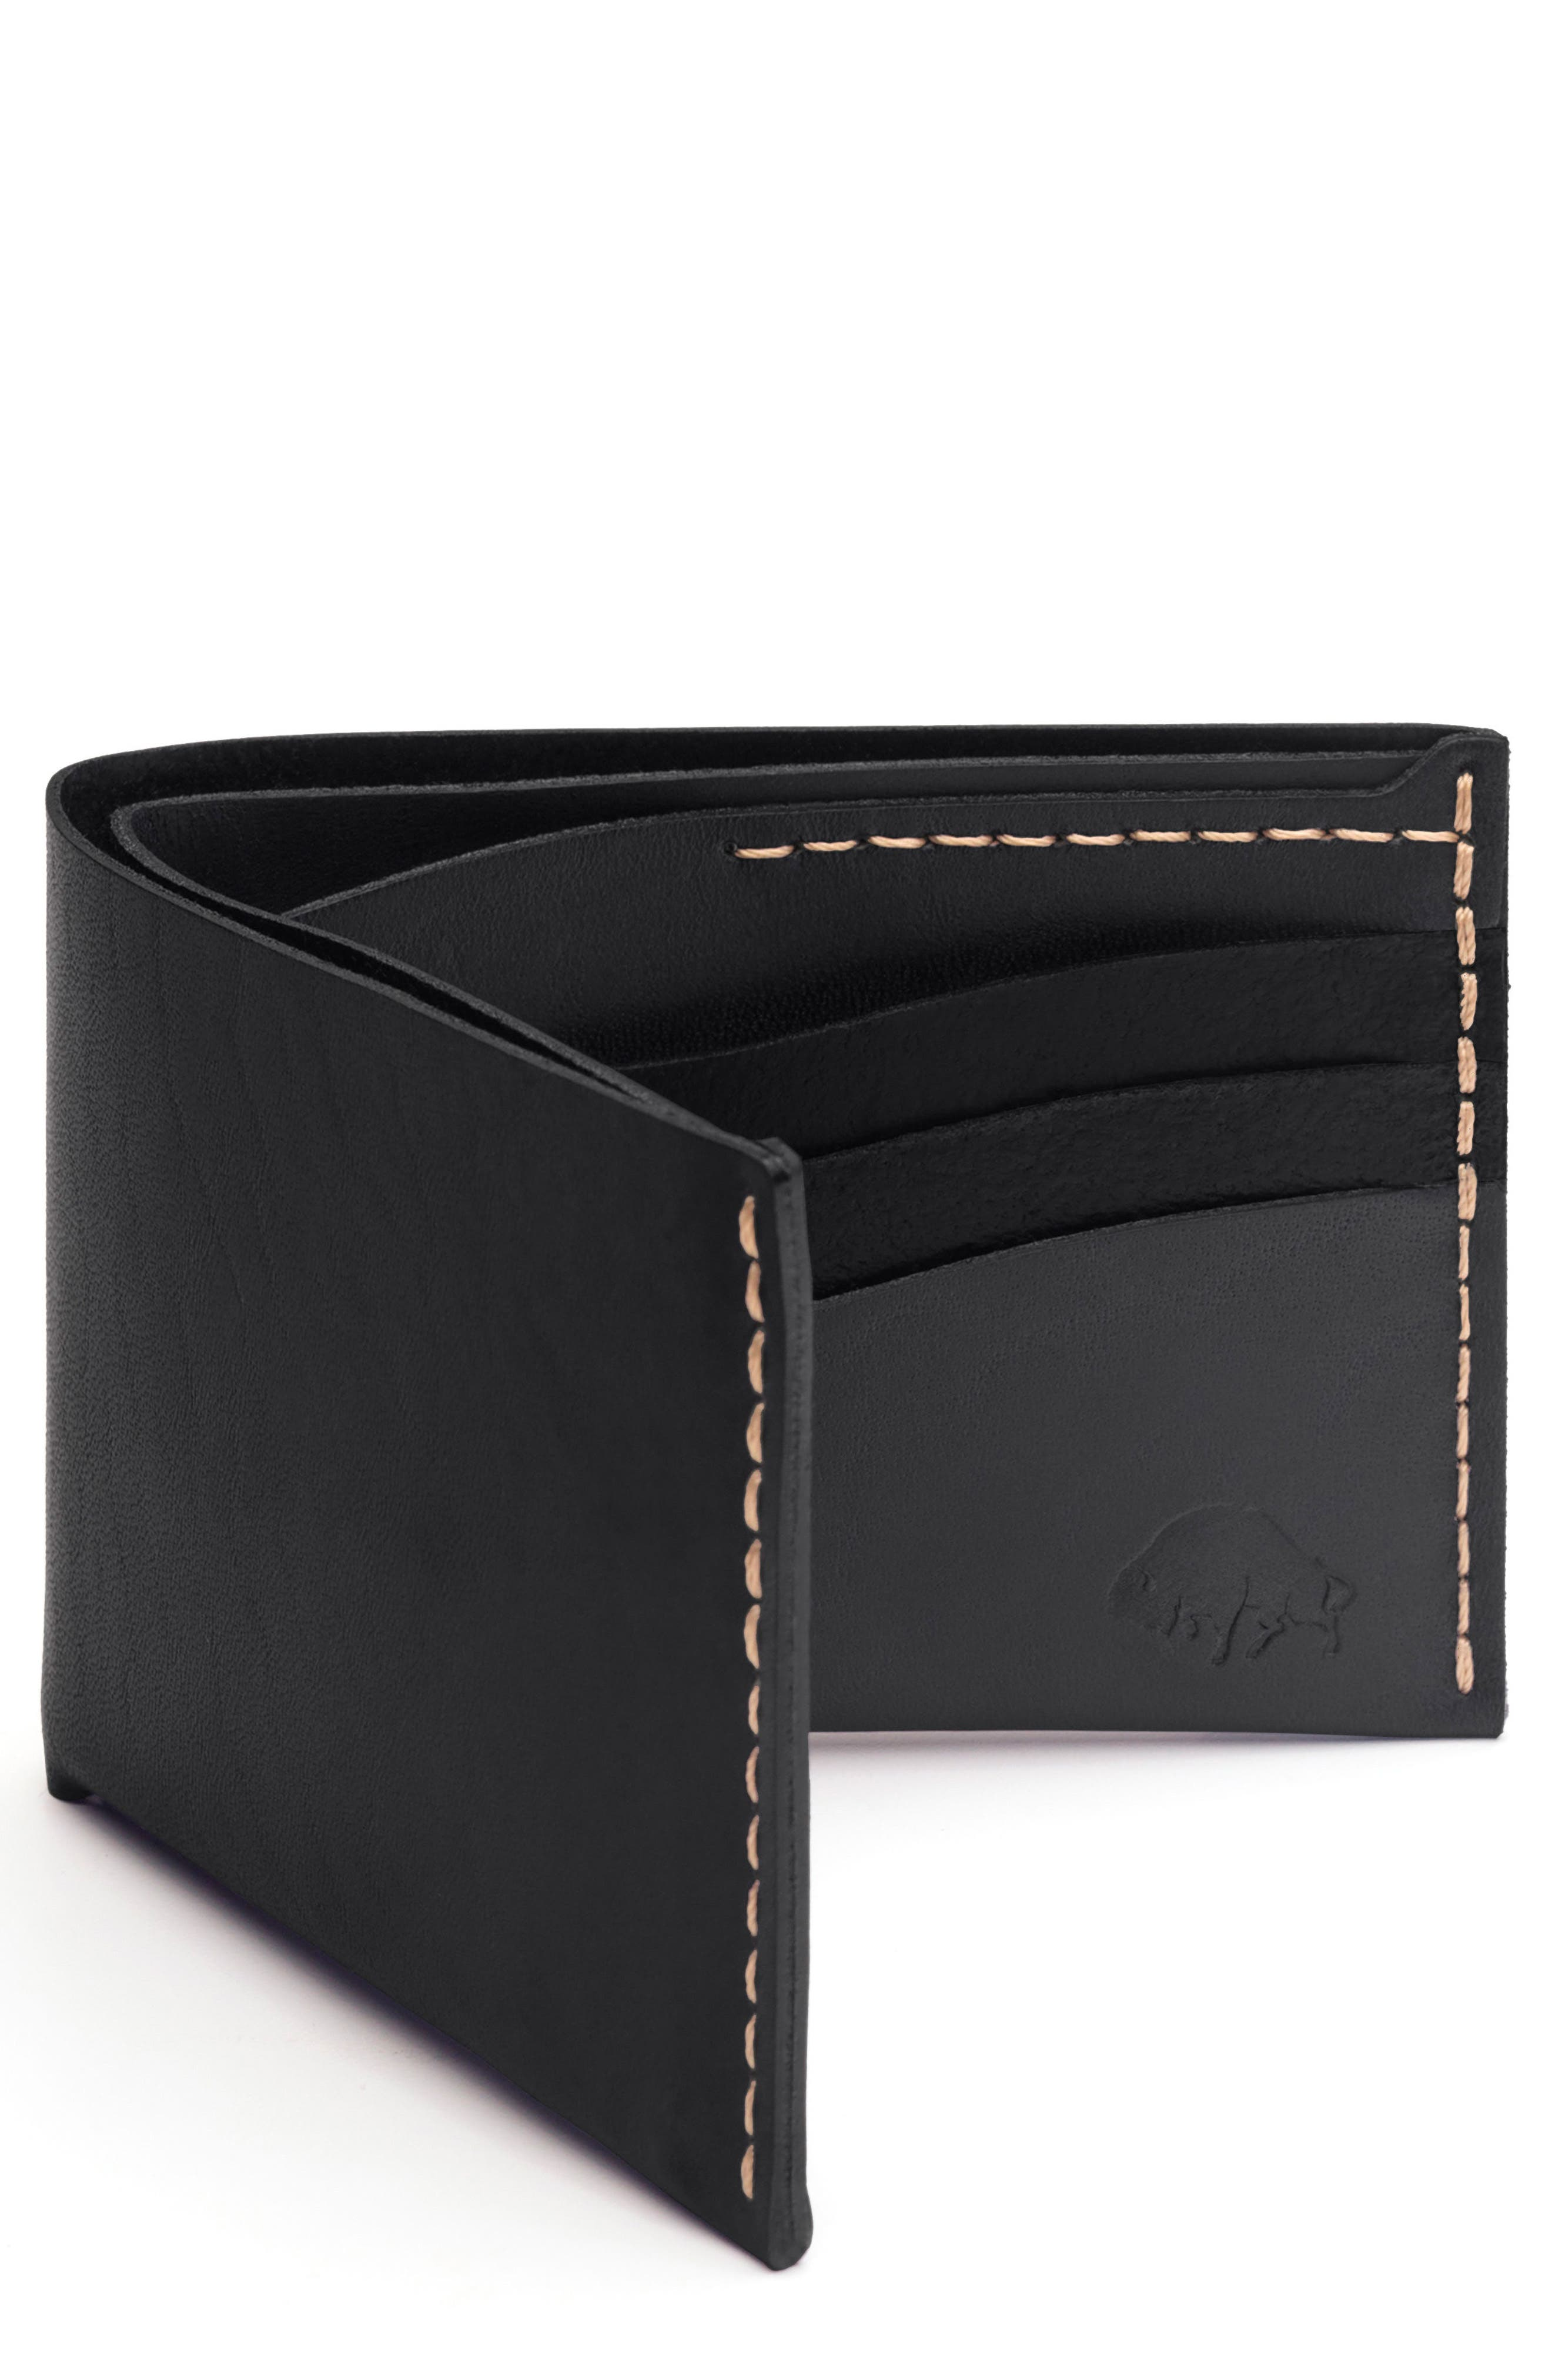 Alternate Image 1 Selected - Ezra Arthur No. 8 Leather Wallet